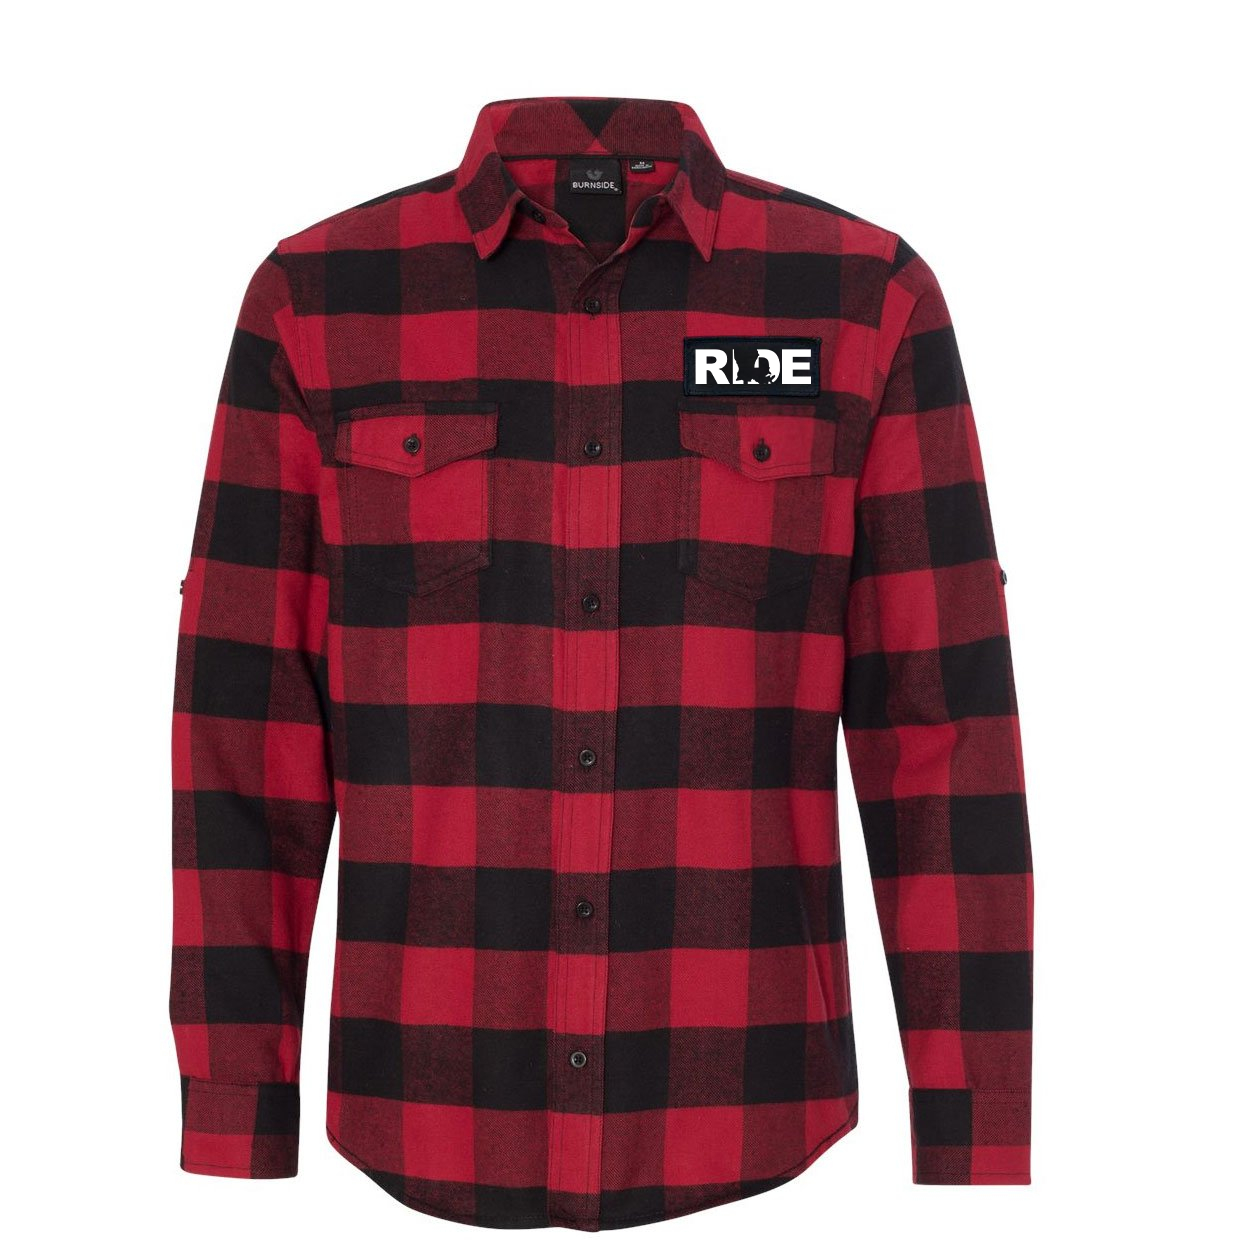 Ride Louisiana Classic Unisex Long Sleeve Woven Patch Flannel Shirt Red/Black Buffalo (White Logo)